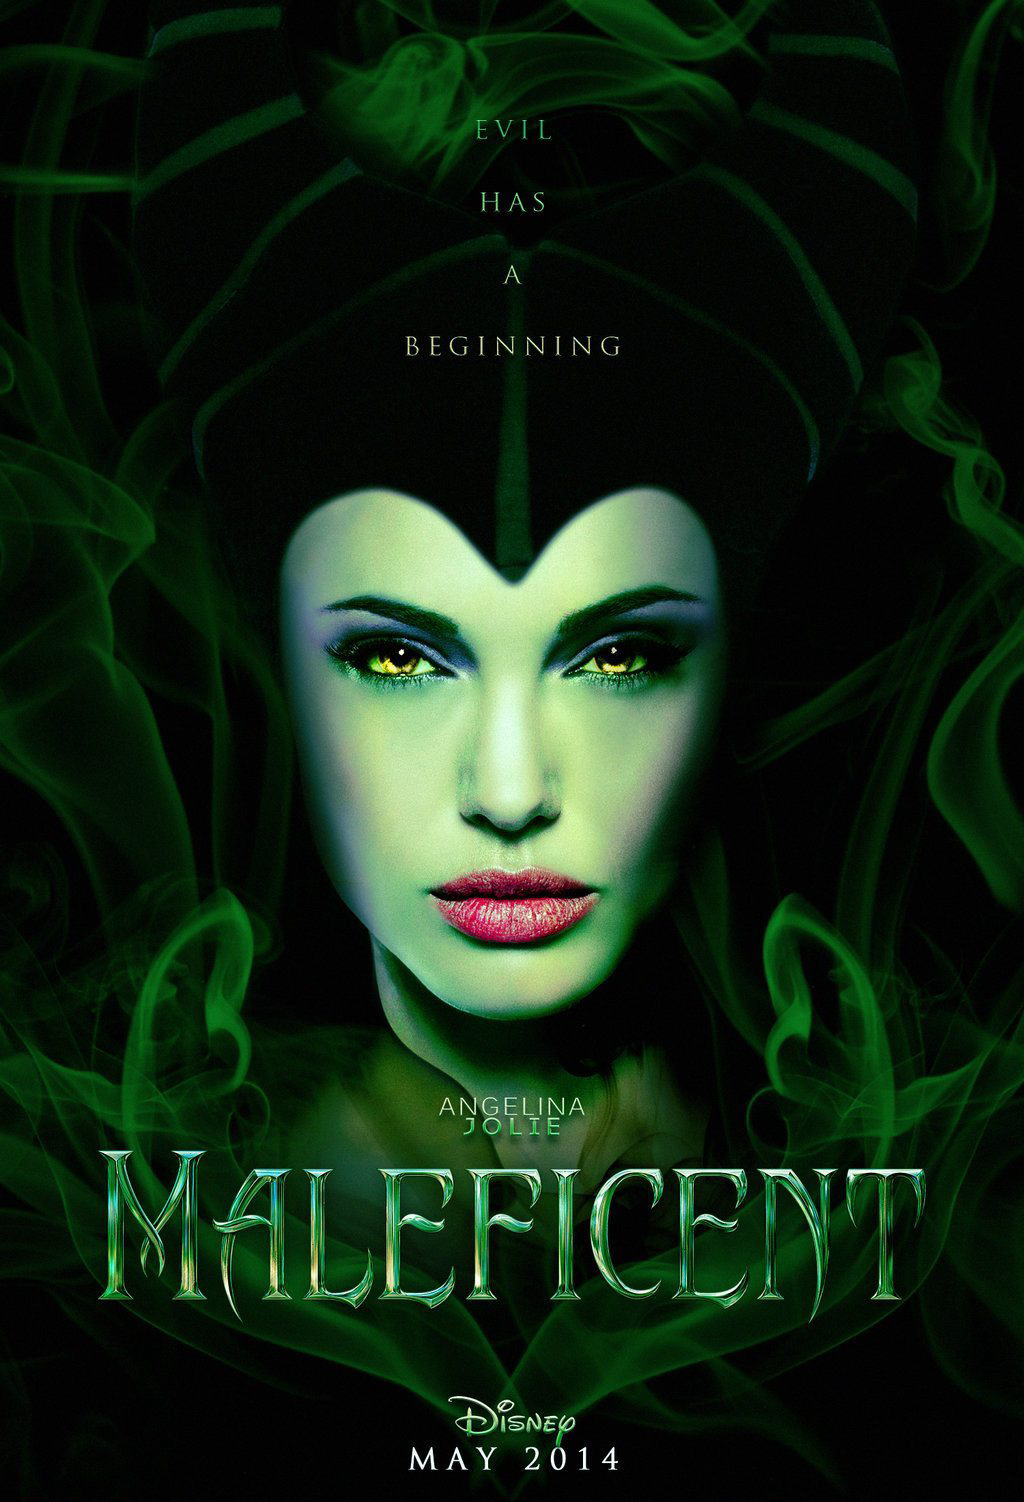 Maleficent (VoicesFILM) [1024 x 1502] (7)